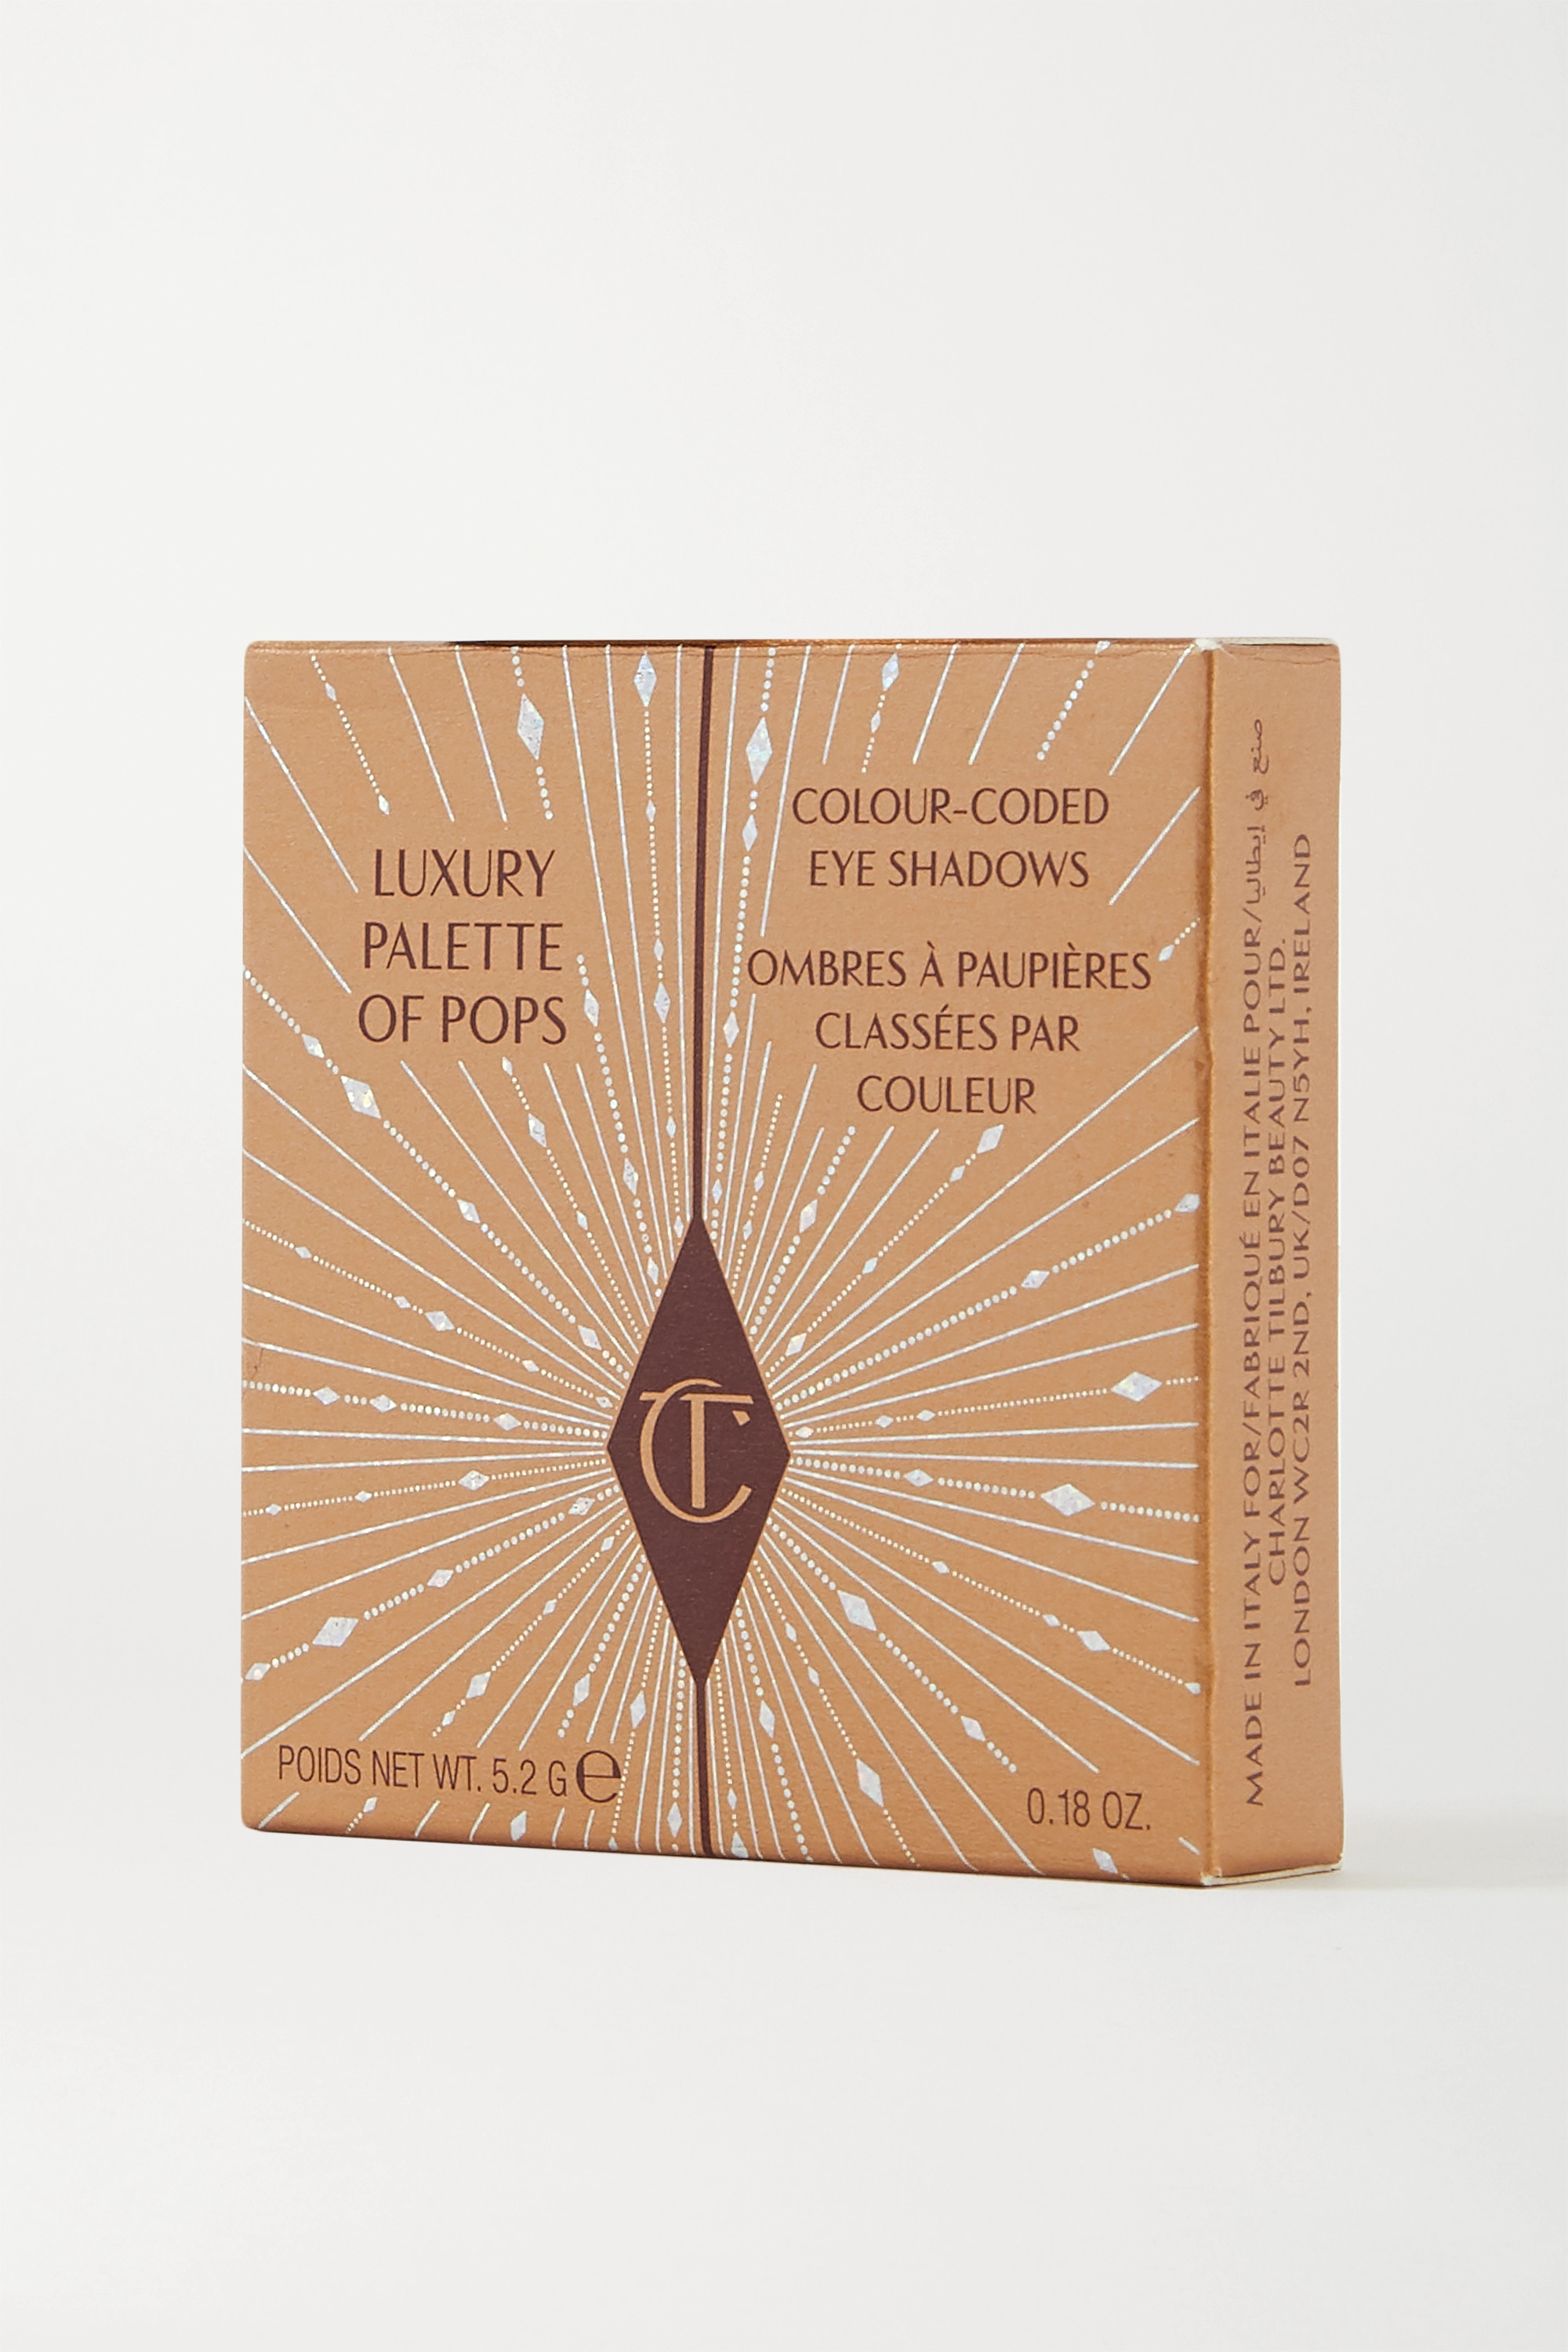 Charlotte Tilbury Luxury Palette of Pops Eyeshadow Quad – Dazzling Diamonds – Lidschattenpalette